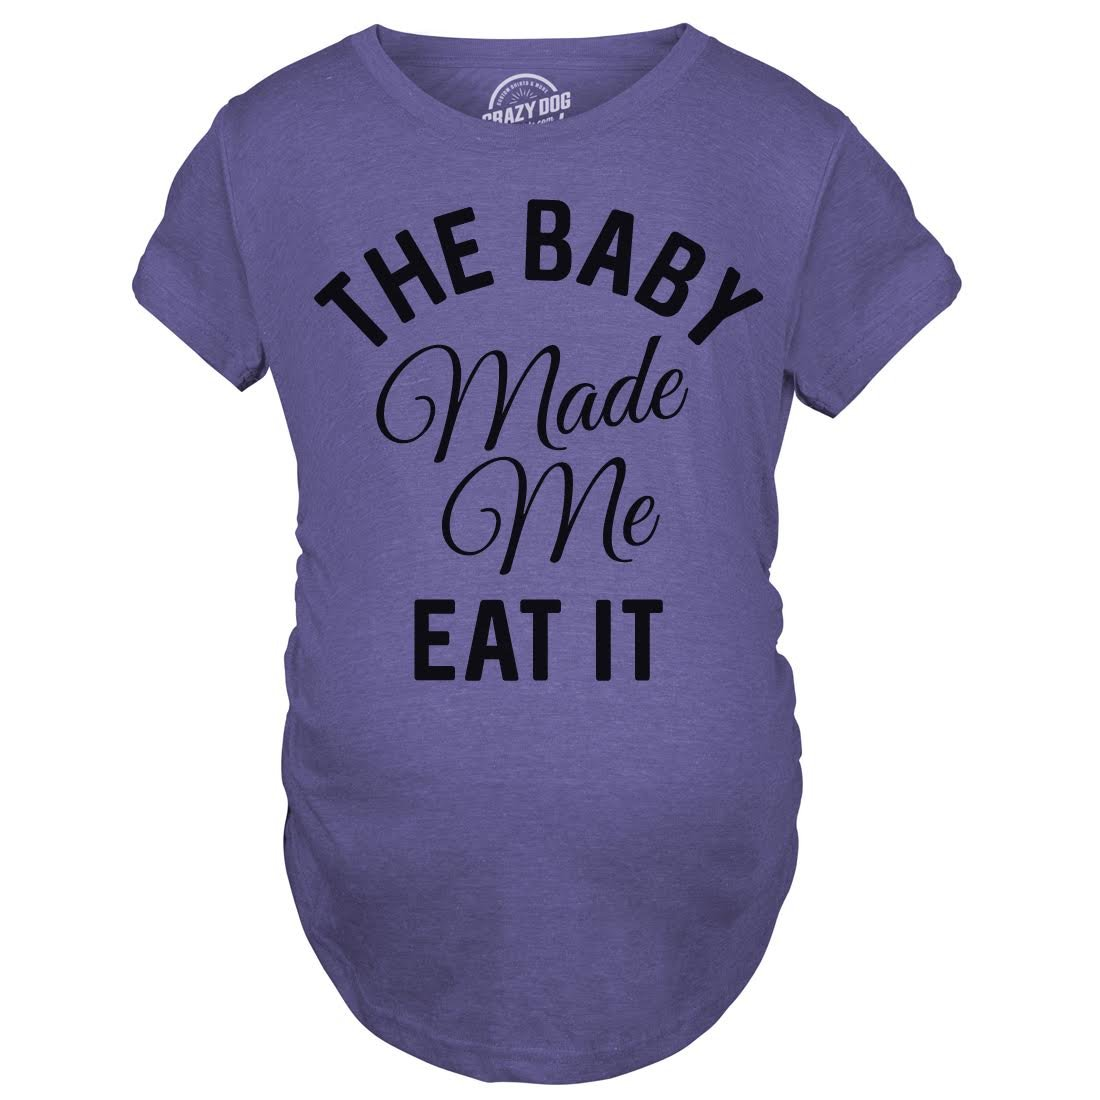 Crazy Dog T-Shirts Maternity The Baby Made Me Eat It Funny Food Pregnancy Shirt (Heather Purple) -M